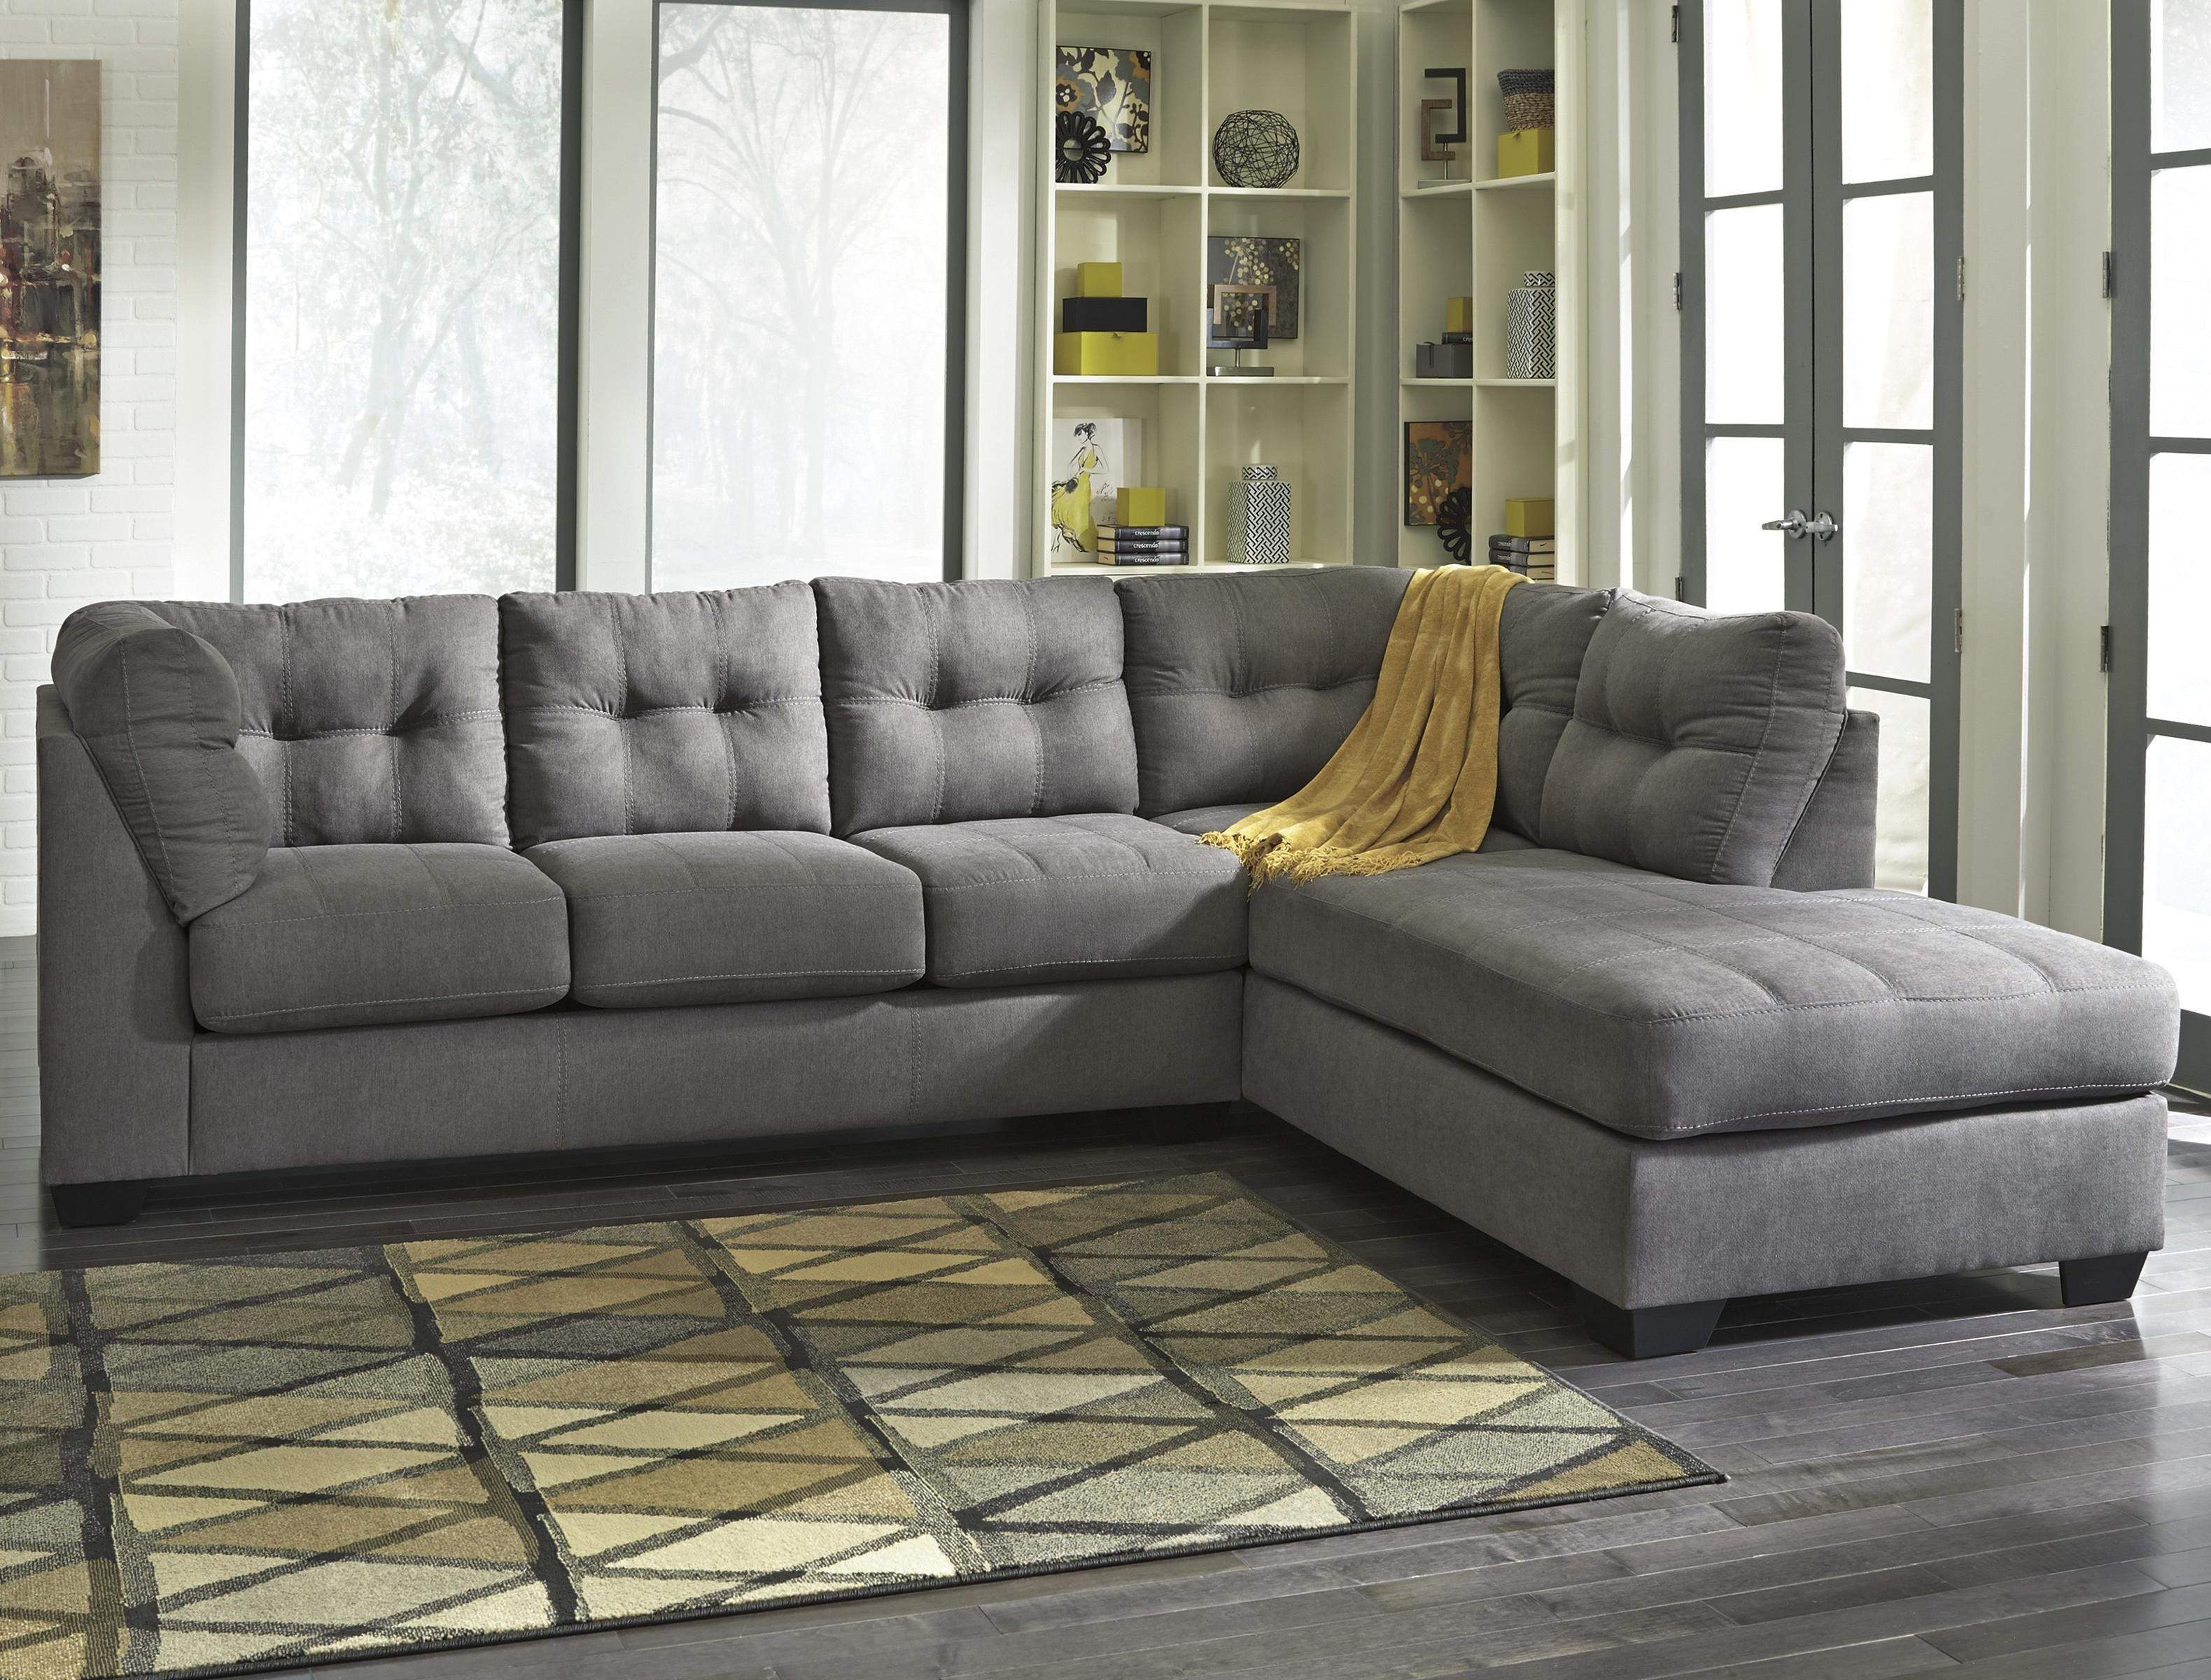 2-Piece Sectional w/ Sleeper Sofa u0026 Chaise Maier - Charcoal 2-Piece : loveseat and chaise sectional - Sectionals, Sofas & Couches